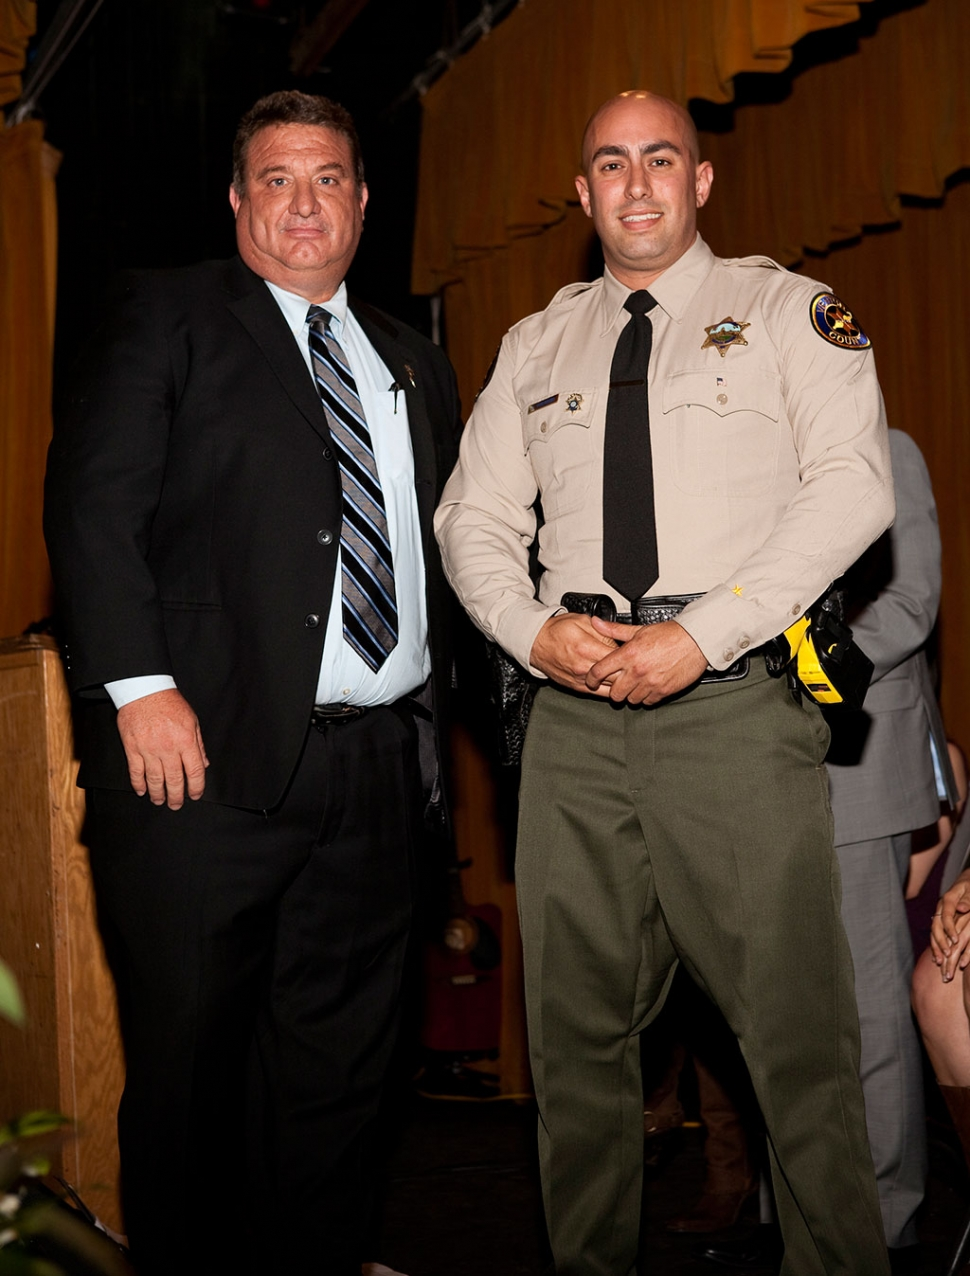 Officer of the Year Deputy Oren Ryerson